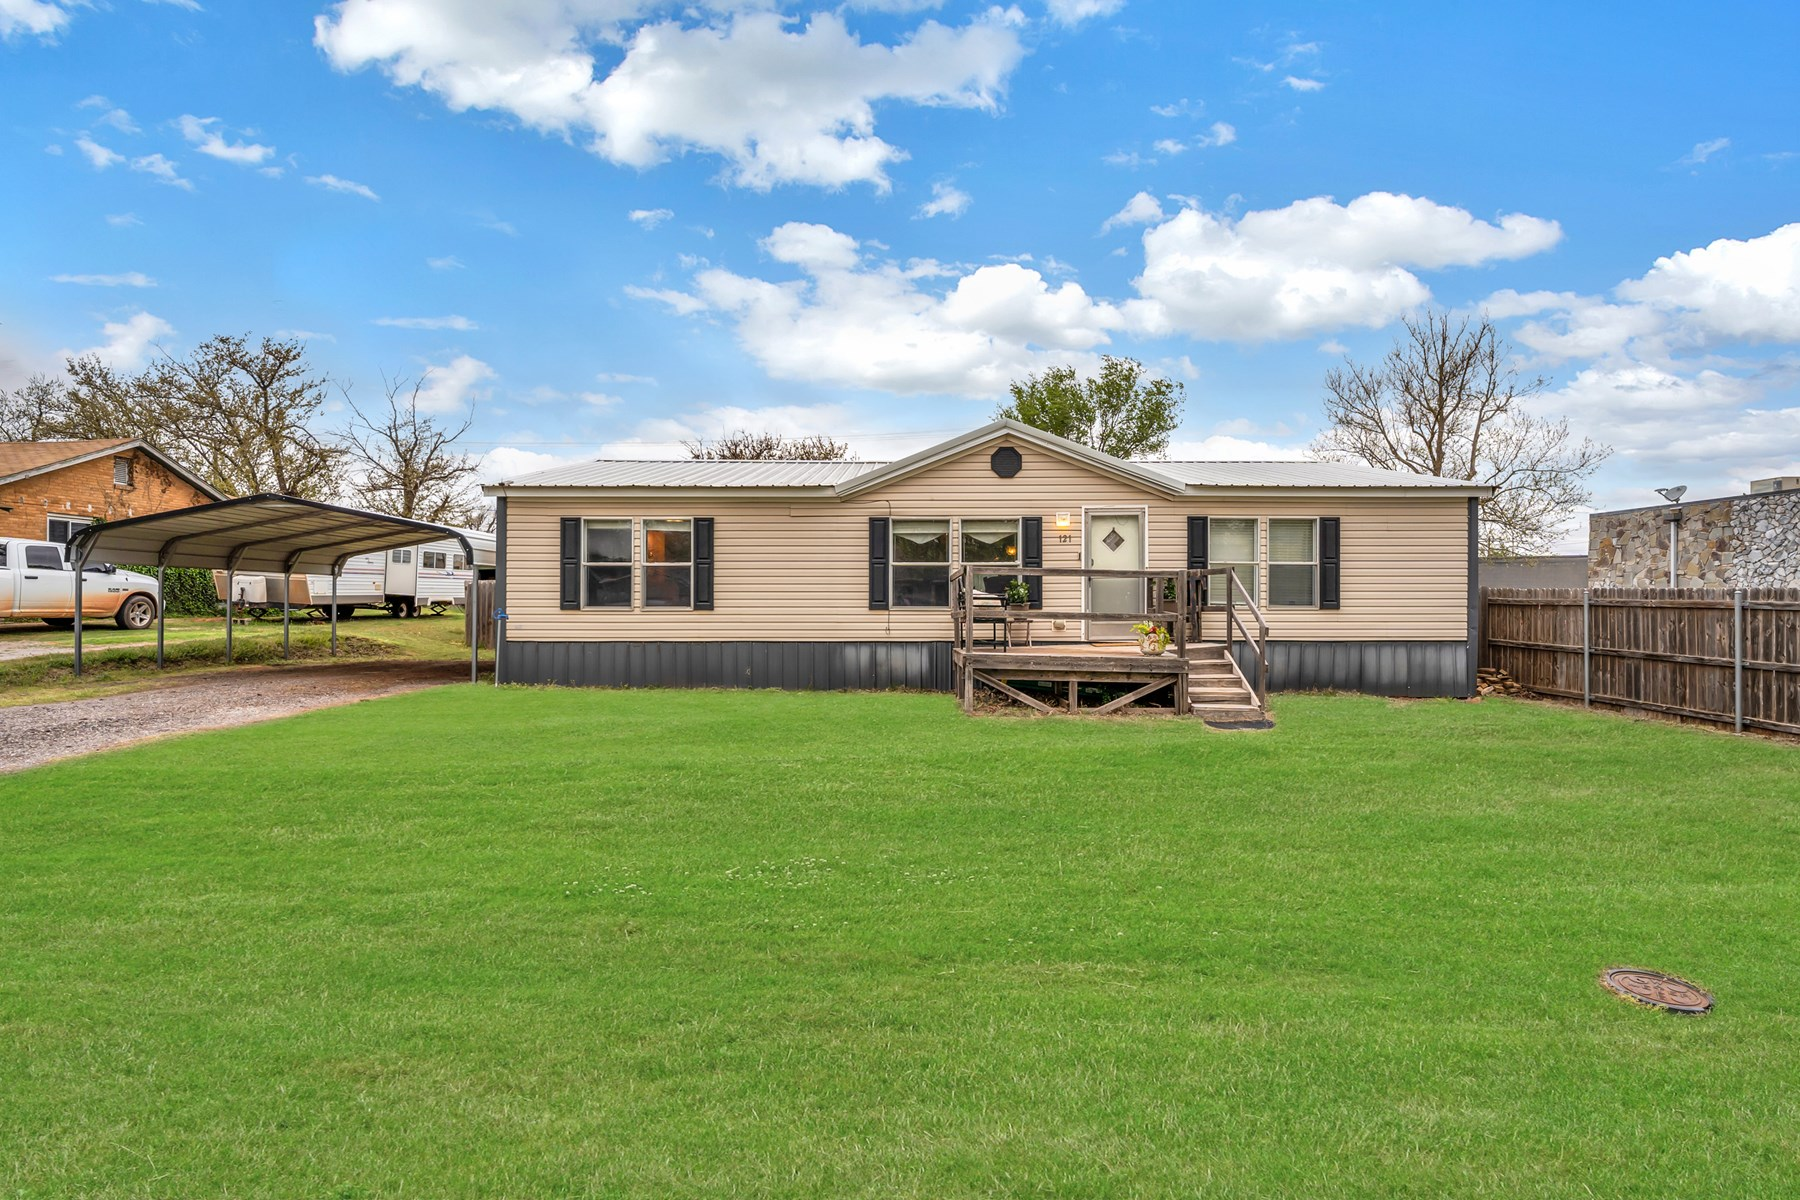 PROPERTY FOR SALE IN CANUTE, OKLAHOMA